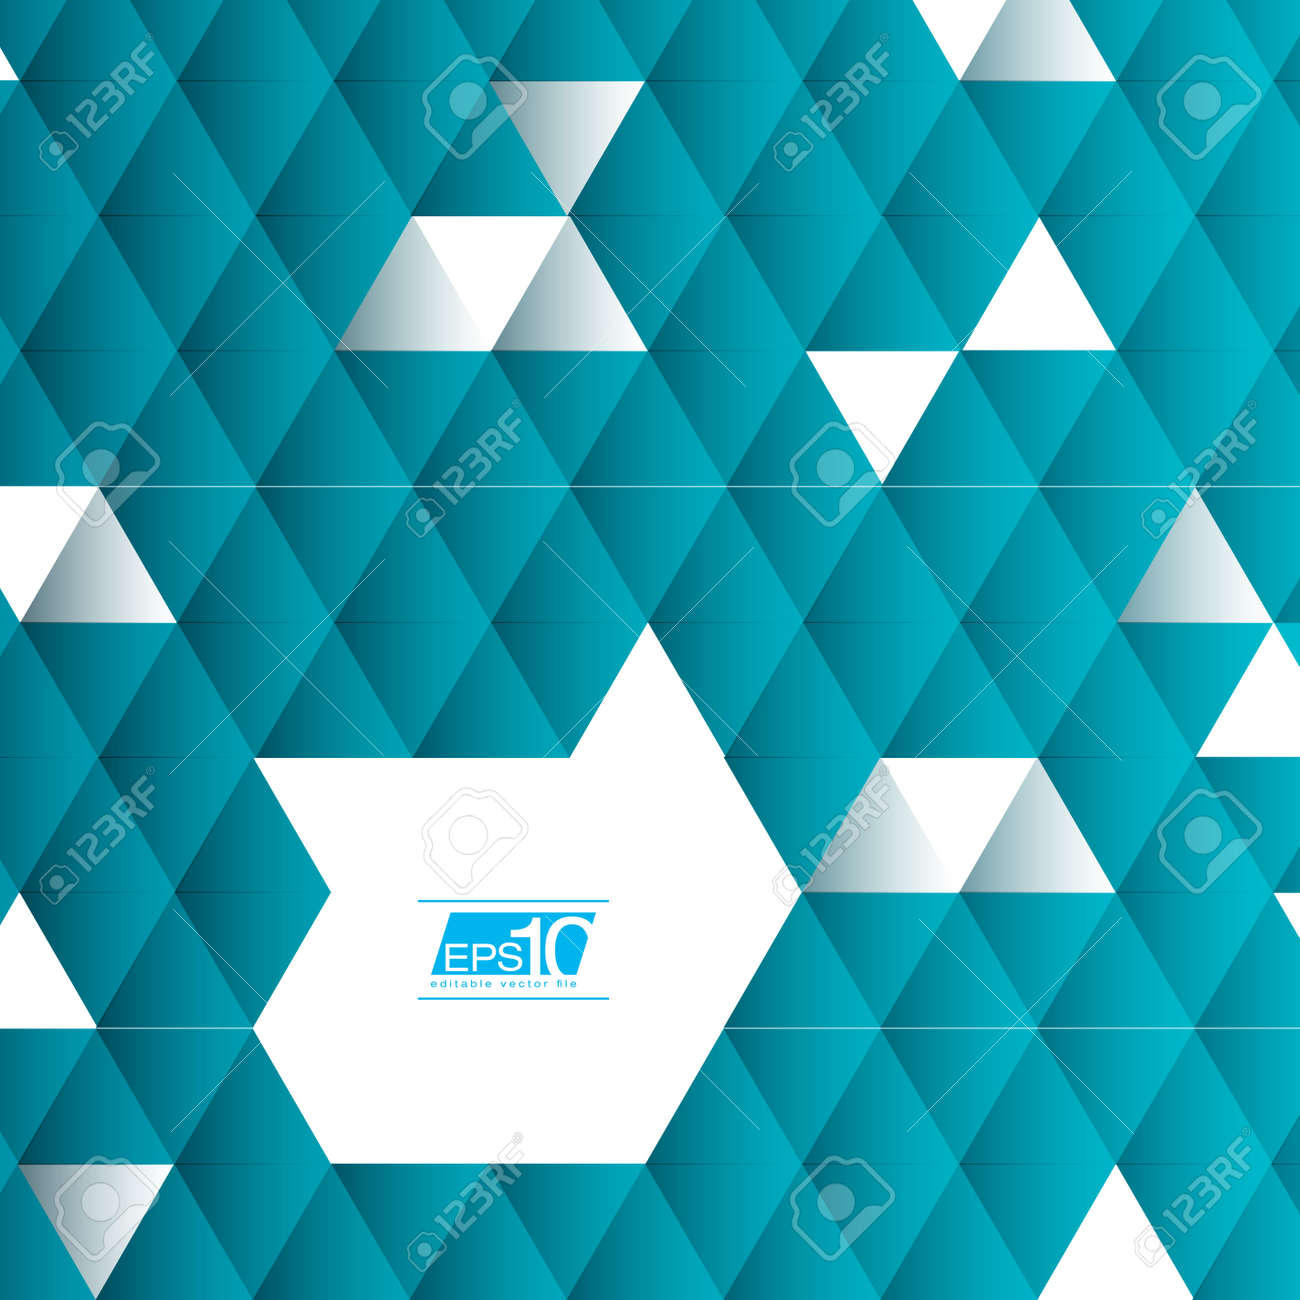 Abstract Triangle Geometrical Vector Design Stock Vector - 19897661